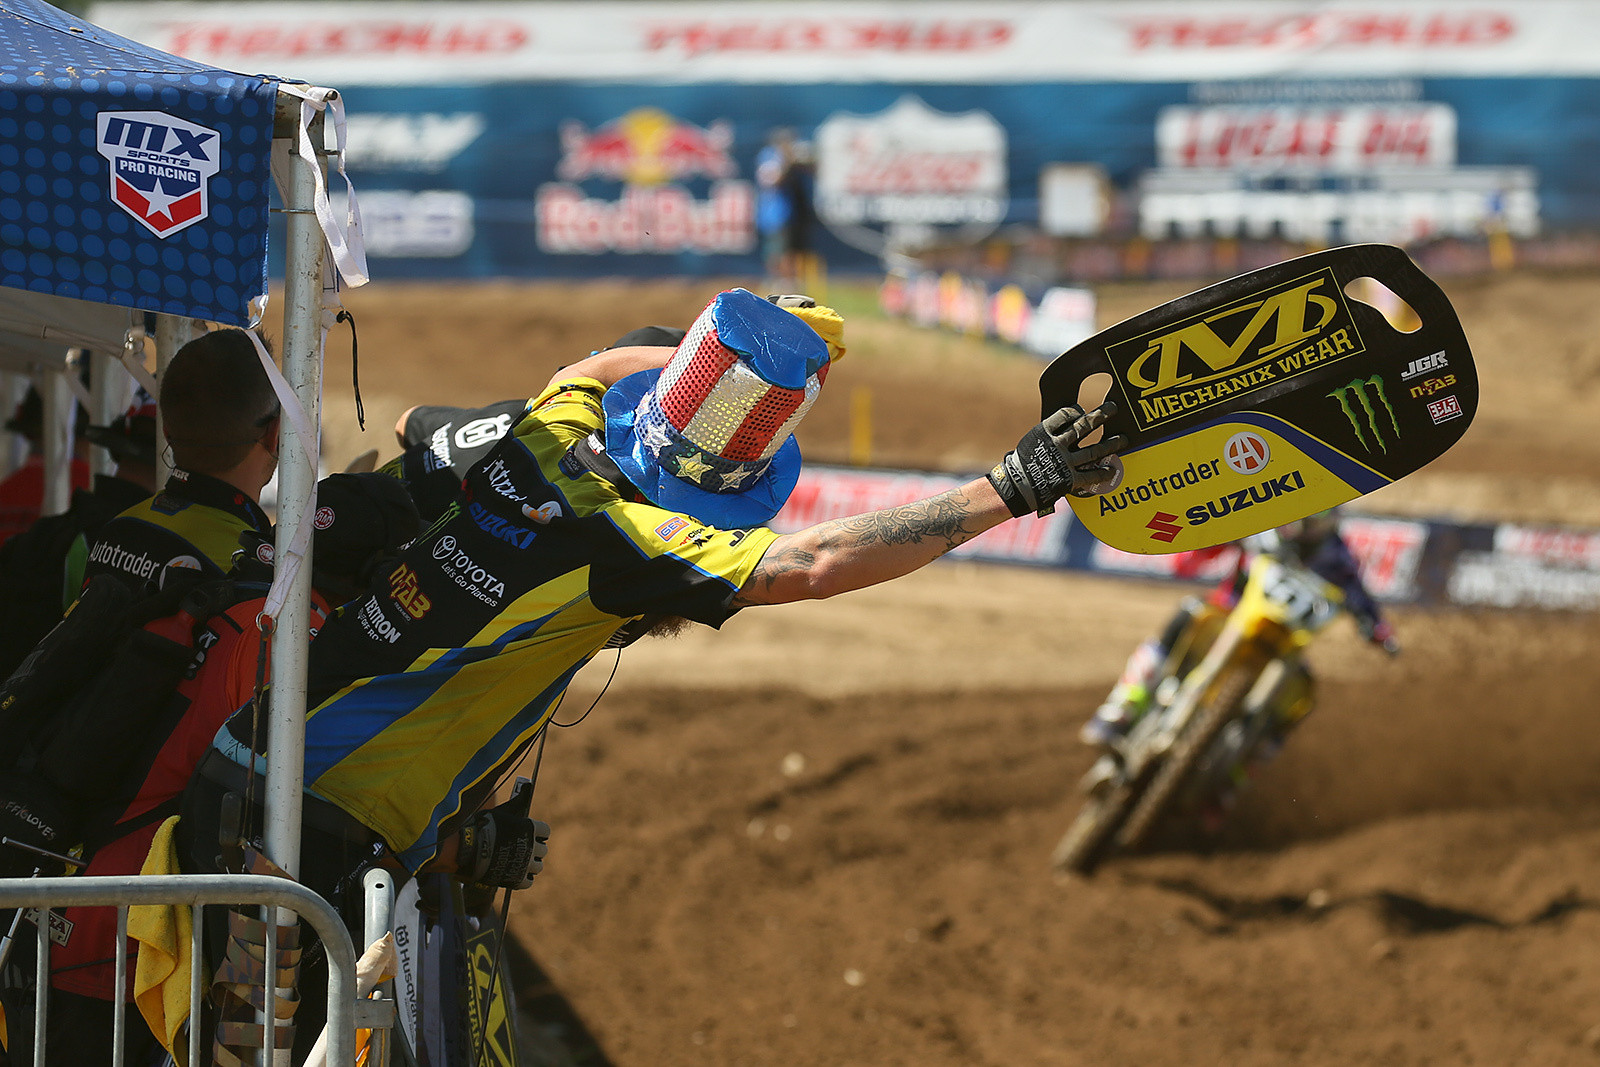 Justin Barcia being cheered on by his mechanic, Ben Schiermeyer. Justin led the first seven laps of moto two before a crash dropped him to fifth. He eventually finished sixth, and combined with his seventh in moto one, he was fifth overall.